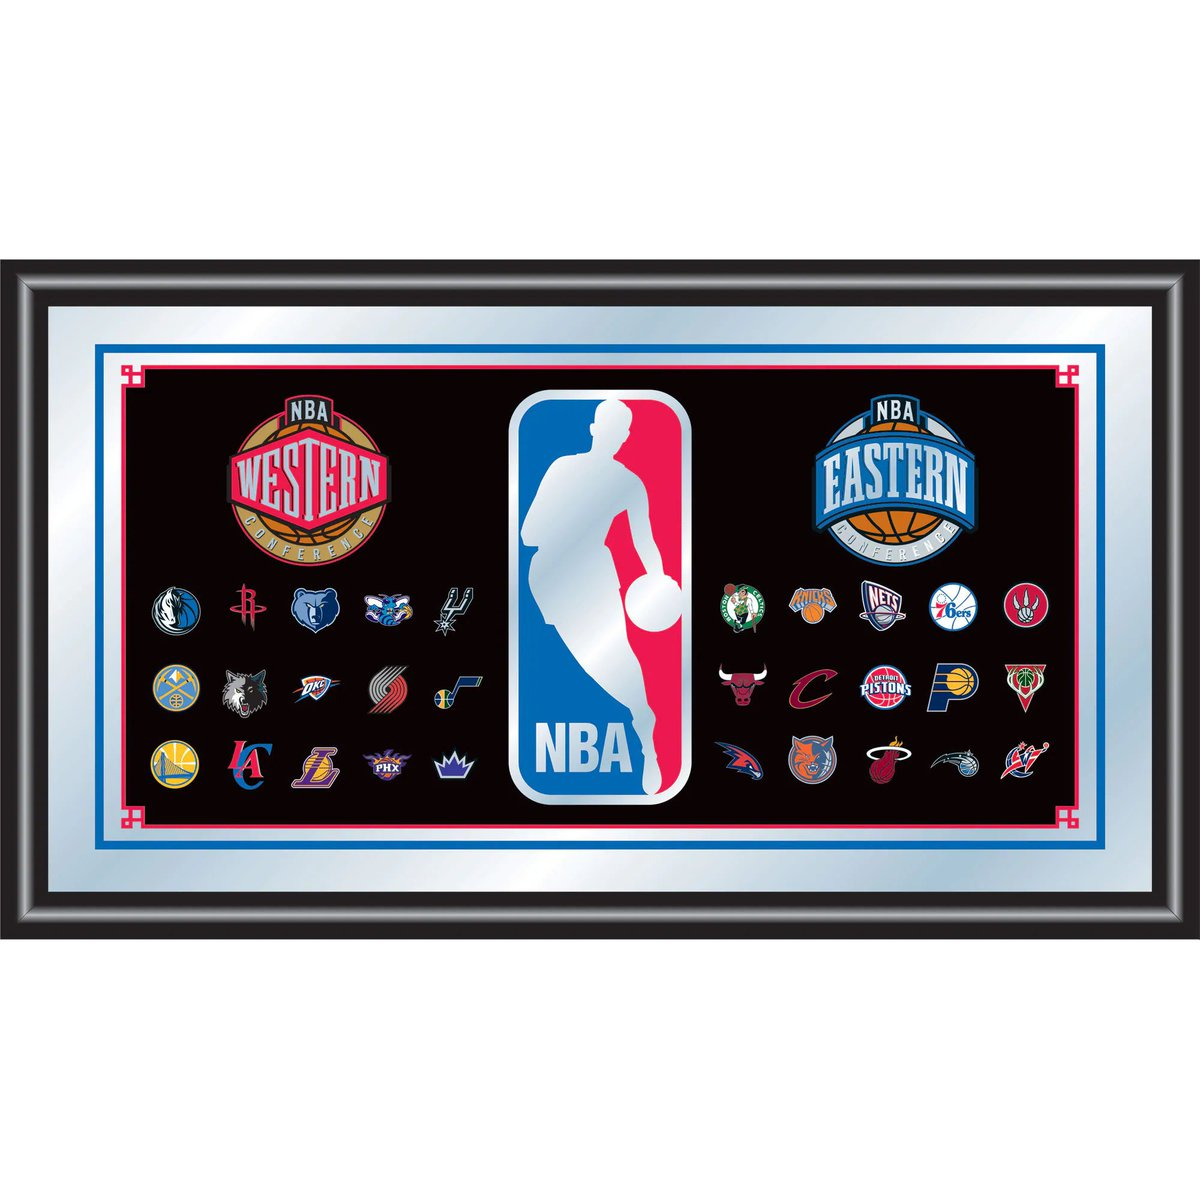 NBA Framed Logo Mirror https://officialgametime.tumblr.com/post/184355174461/nba-framed-logo-mirror …  #nba #basketball #nfl #sports #lebronjames #nike #lakers #follow #ballislife #like #fitness #lebron #sport #love #warriors #hiphop #music #bball #dunk #memes #jordan